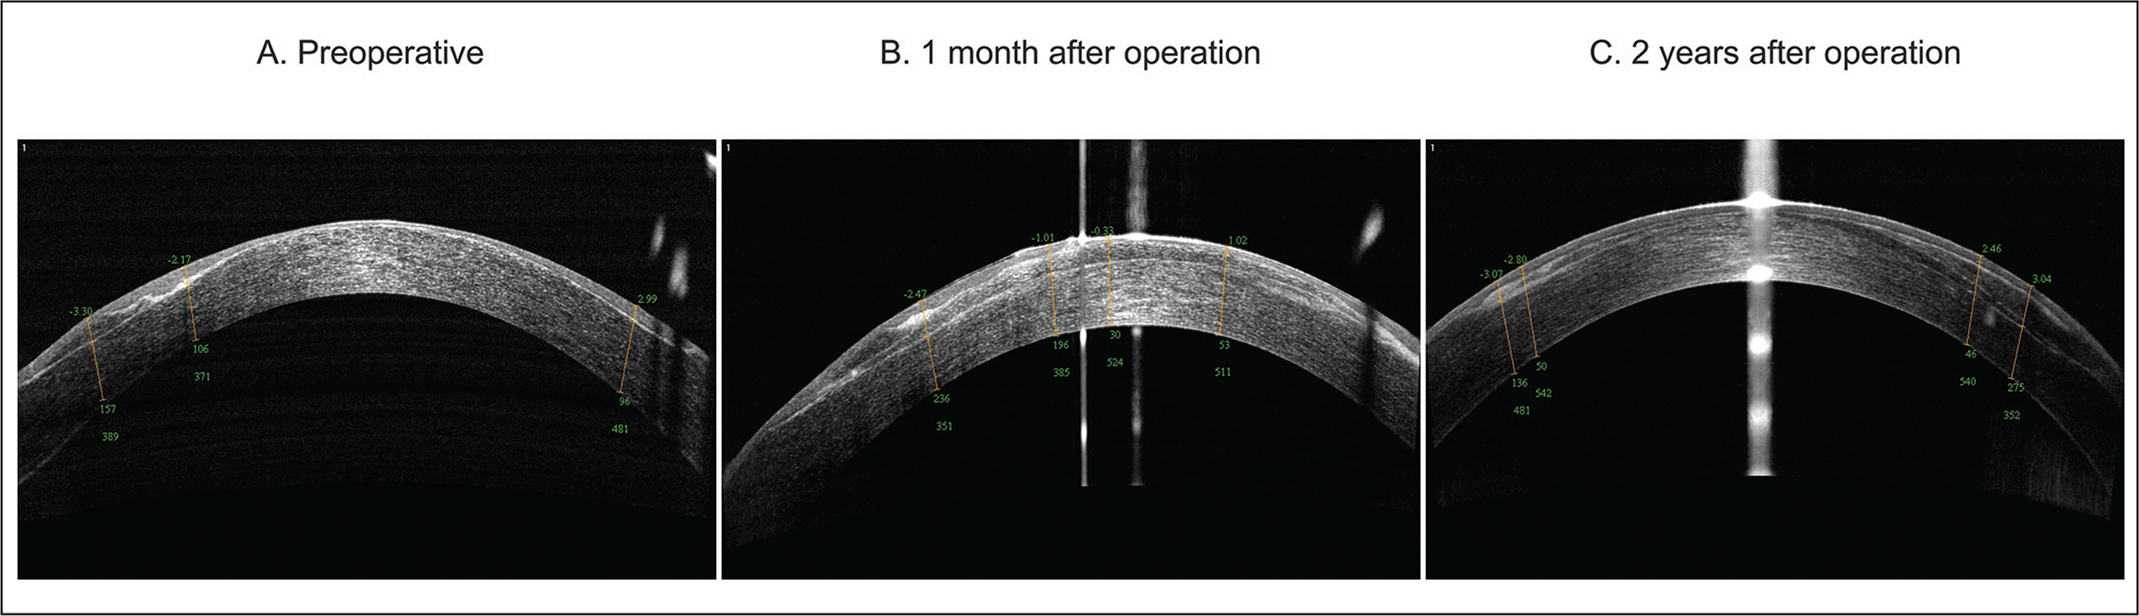 Anterior segment optical coherence tomography images (A) preoperatively and (B) 1 month and (C) 2 years after operation.